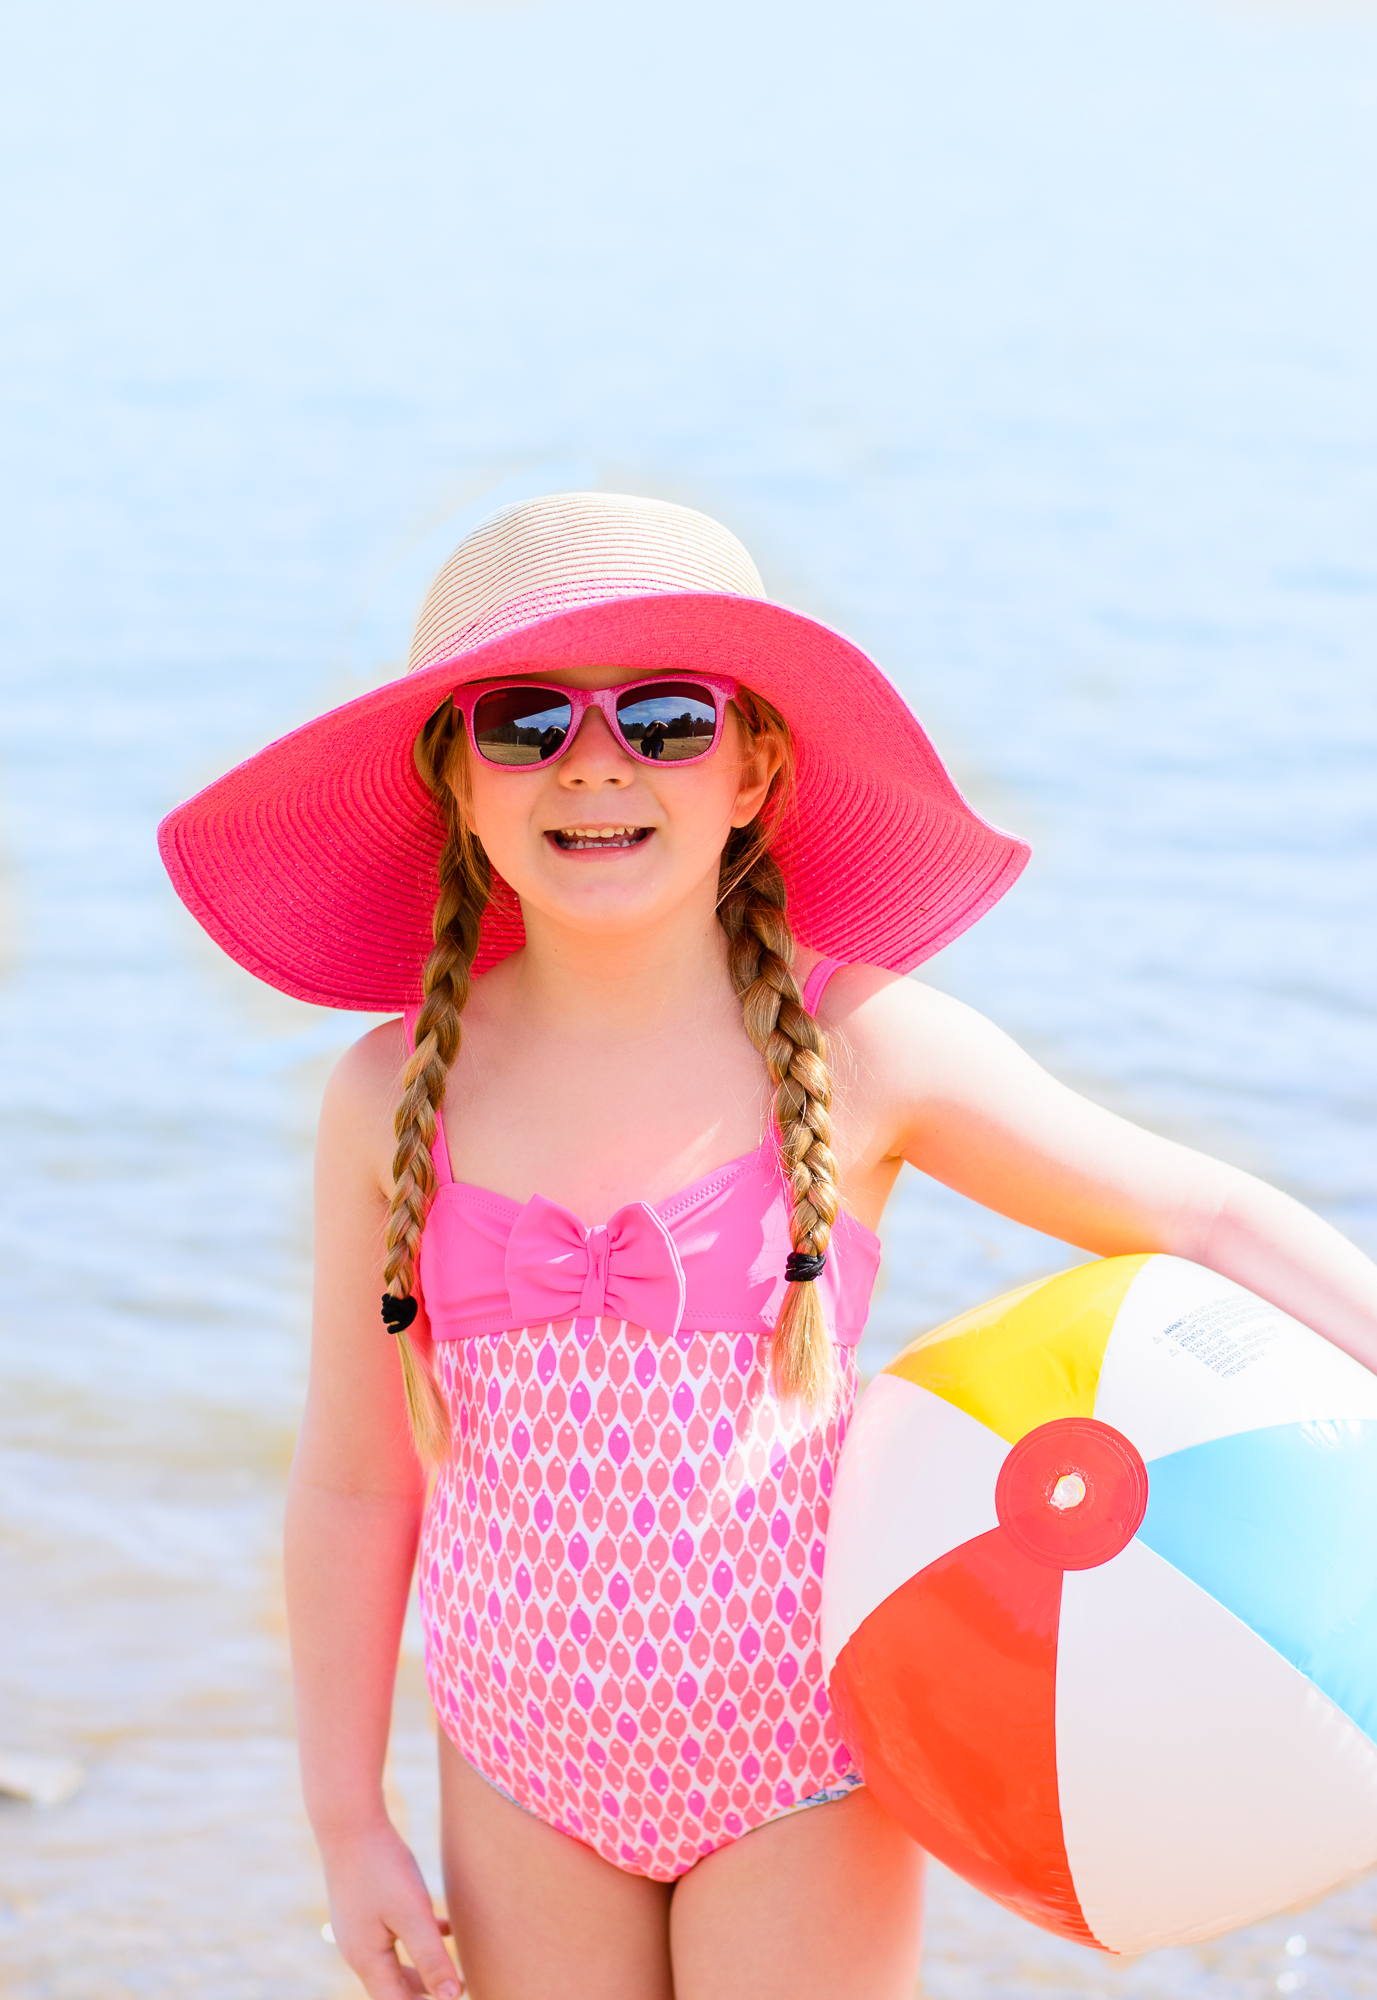 Spring Break Travel Tips for Families. Packing for your family can be a challenge, but with these easy packing tips and tricks, your trip will be a breeze!